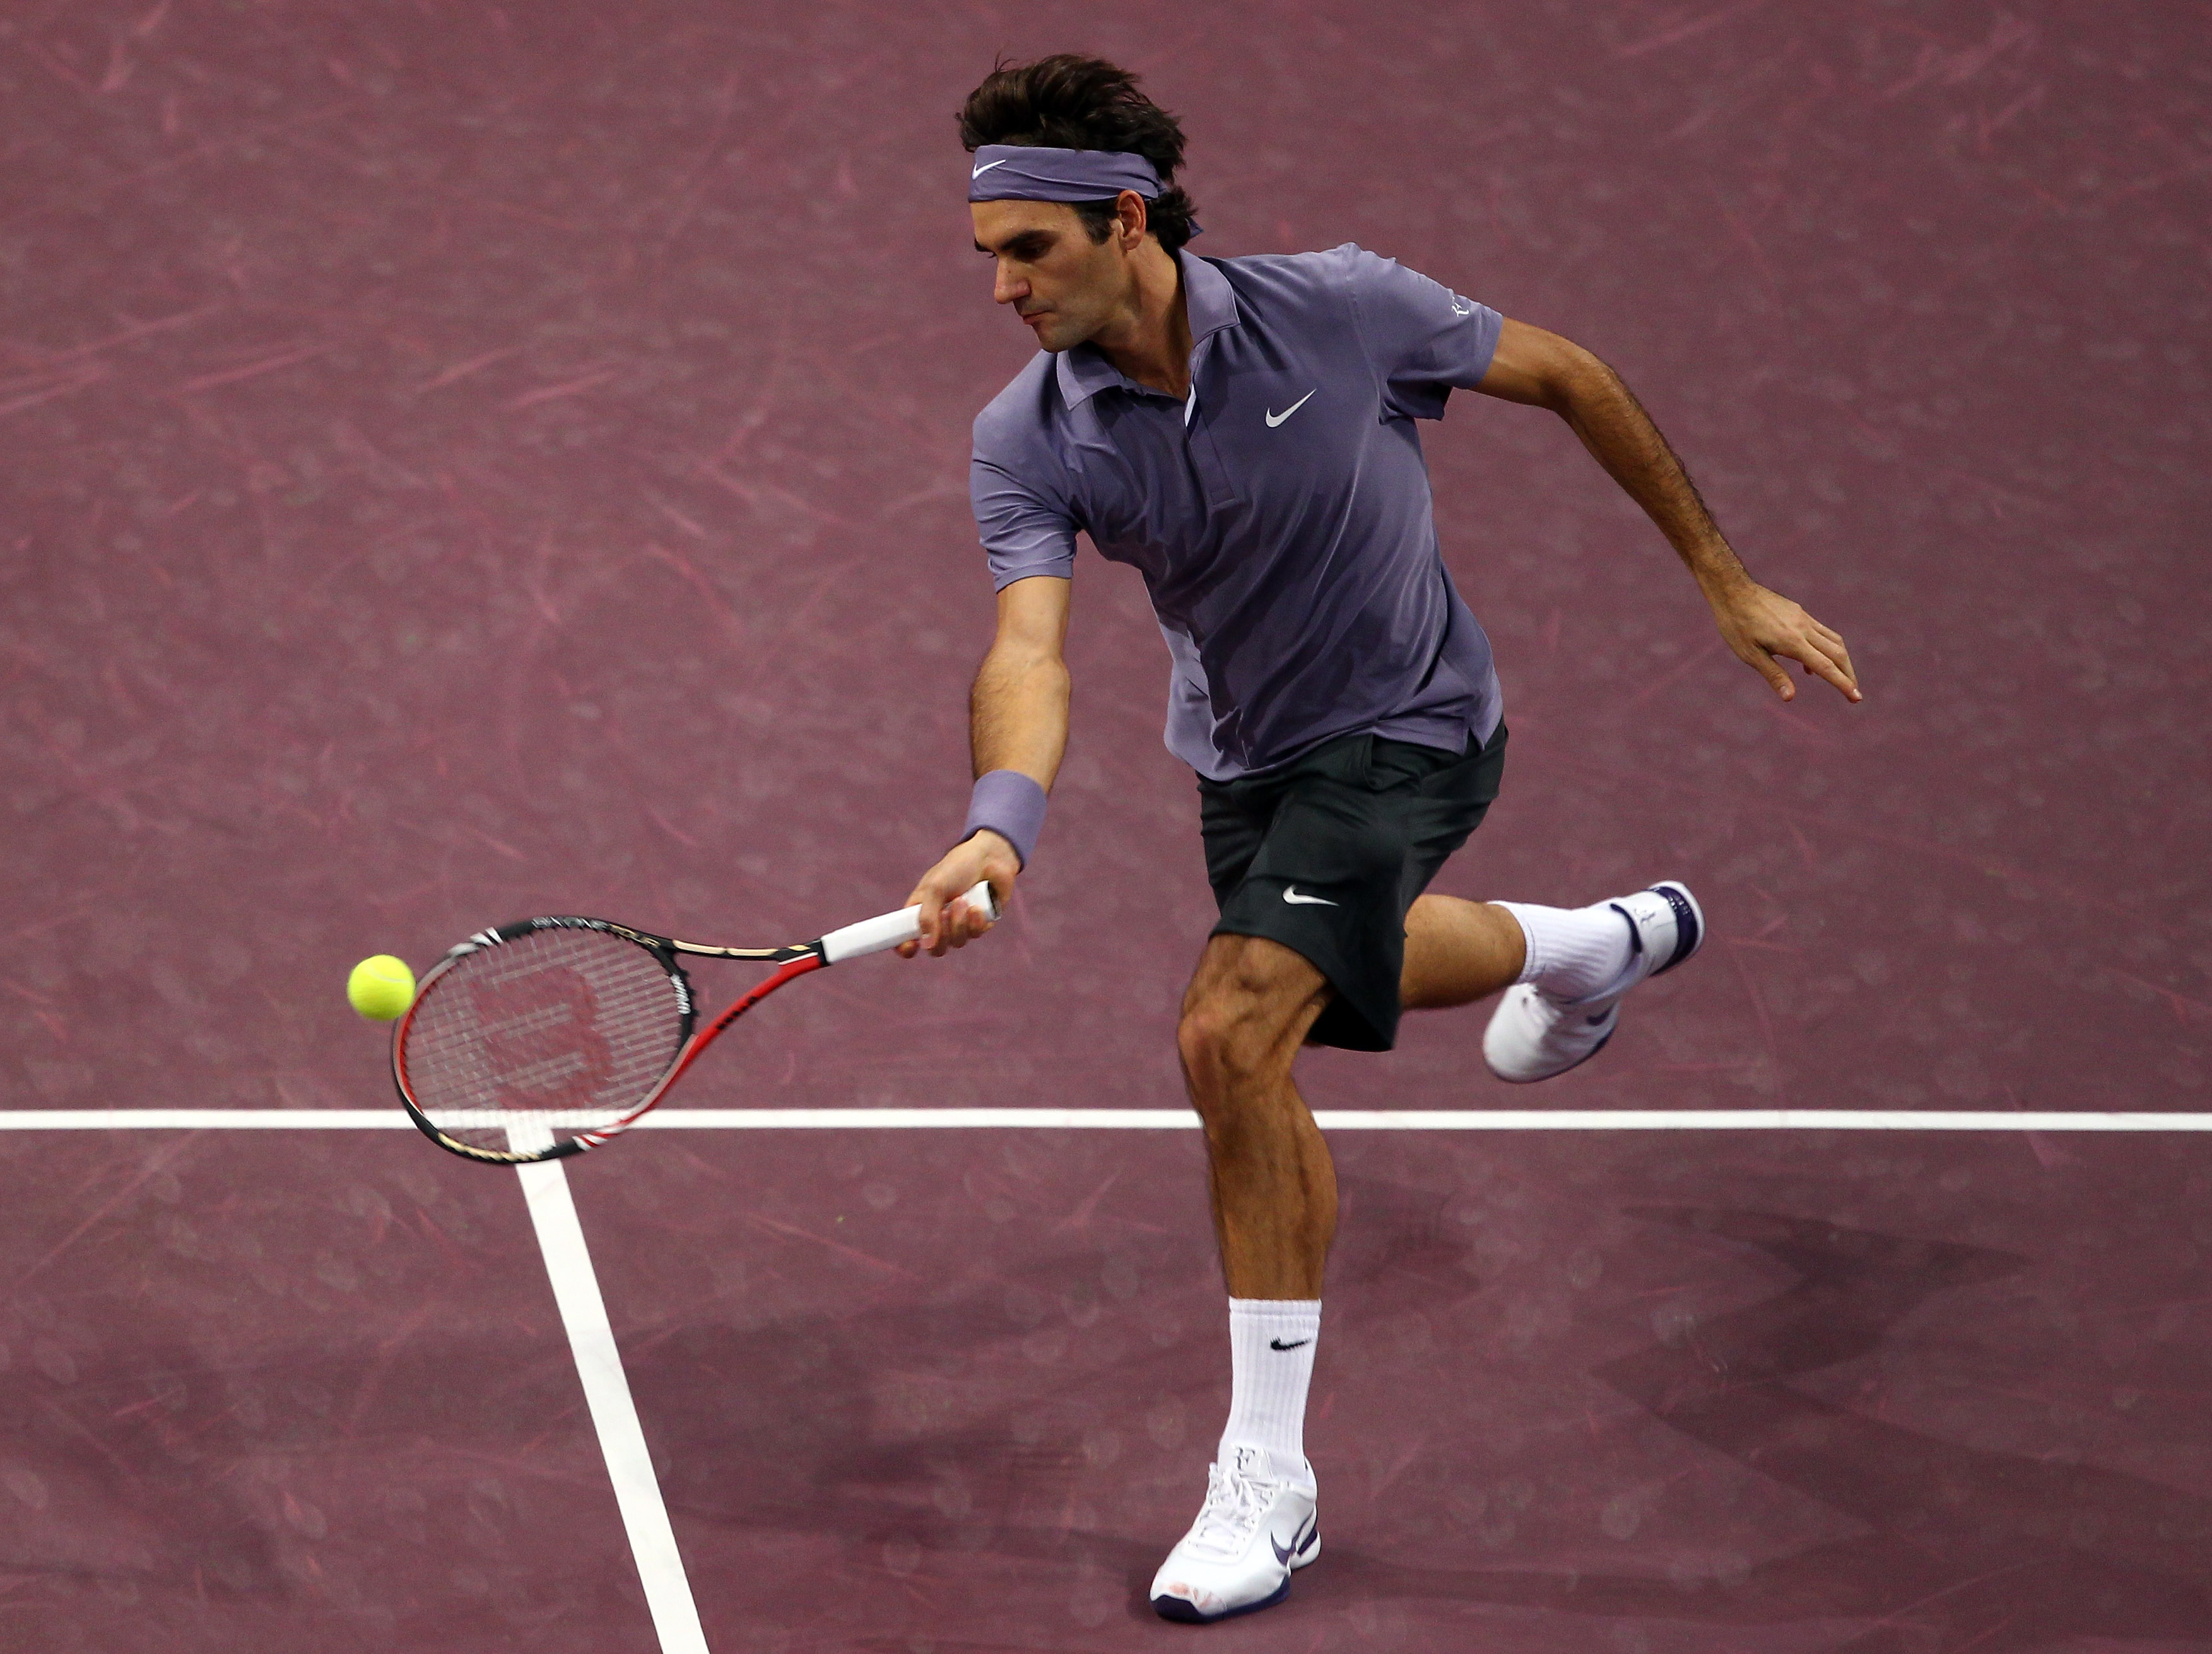 BASEL, SWITZERLAND - NOVEMBER 03:  Roger Federer of Switzerland plays a volley in his match against Janko Tipsarevic of Serbia during Day Three of the Davidoff Swiss Indoors Tennis at St Jakobshalle on November 3, 2010 in Basel, Switzerland.  (Photo by Ju